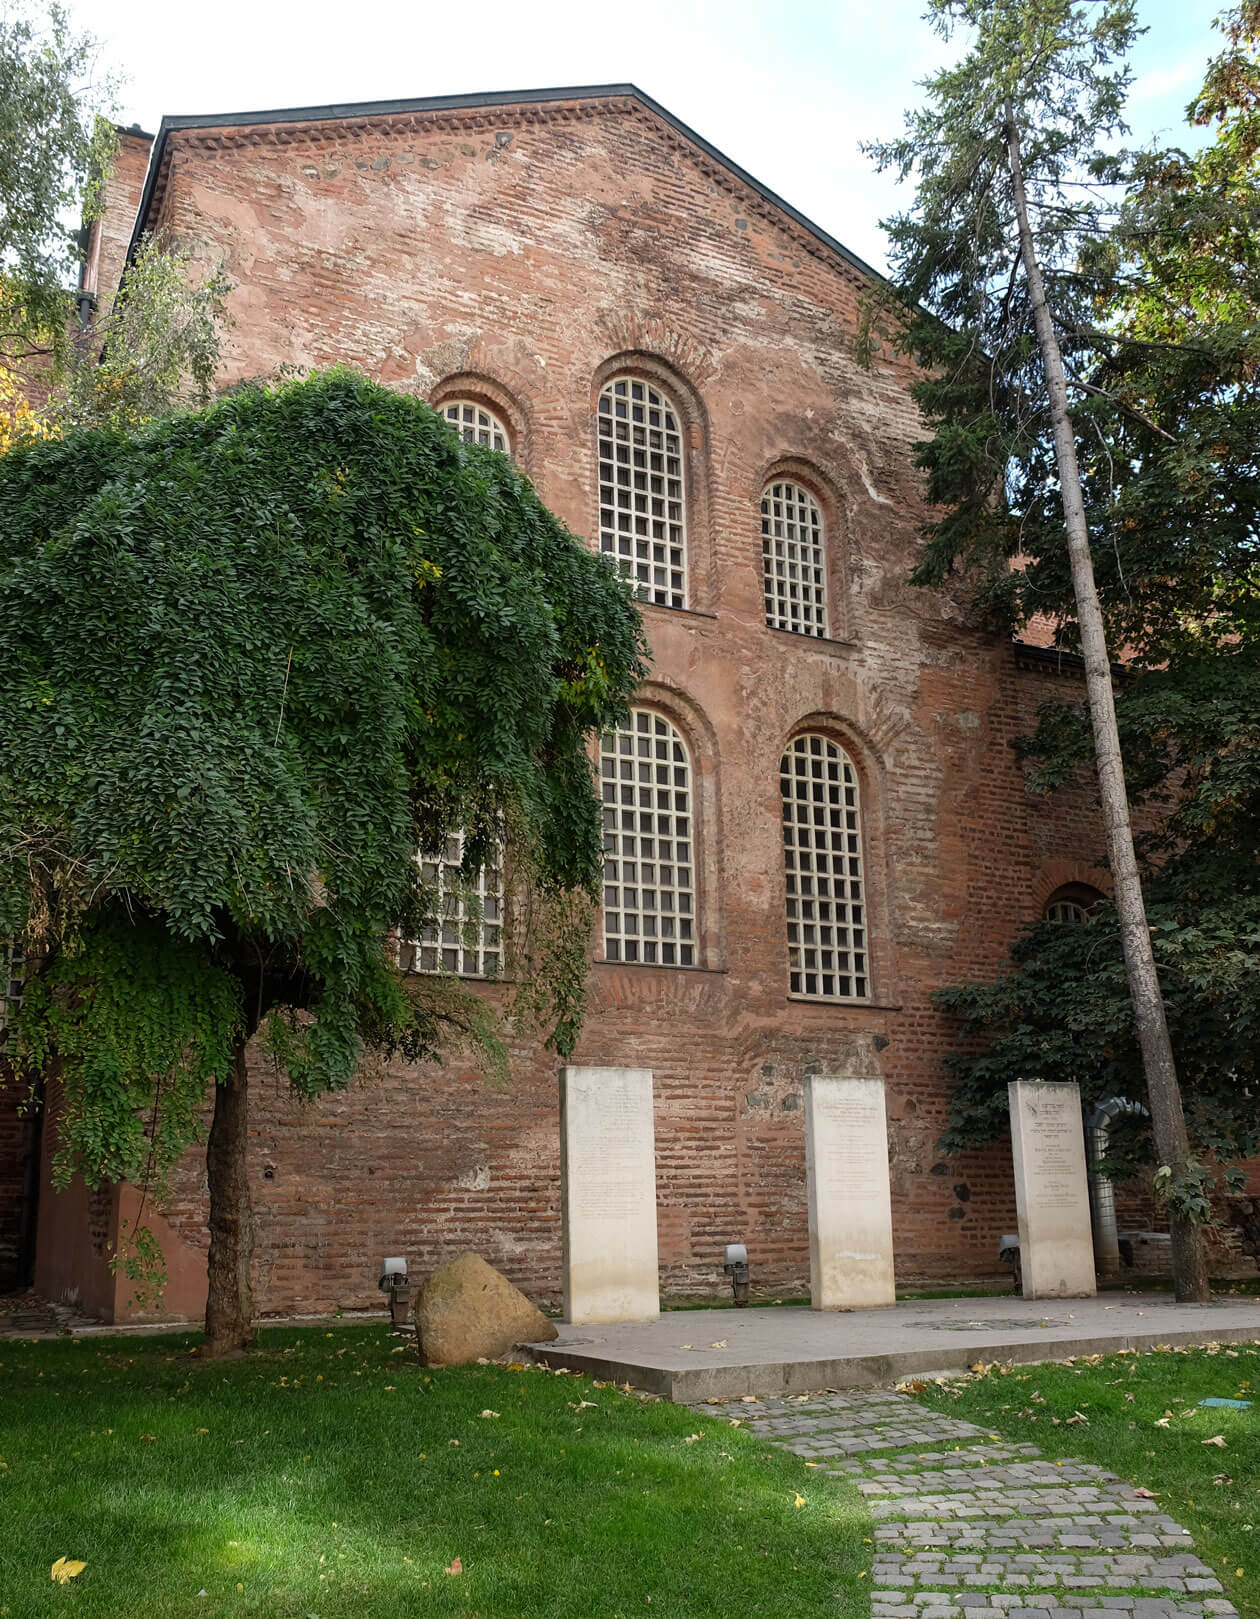 The church of Sveta Sofia